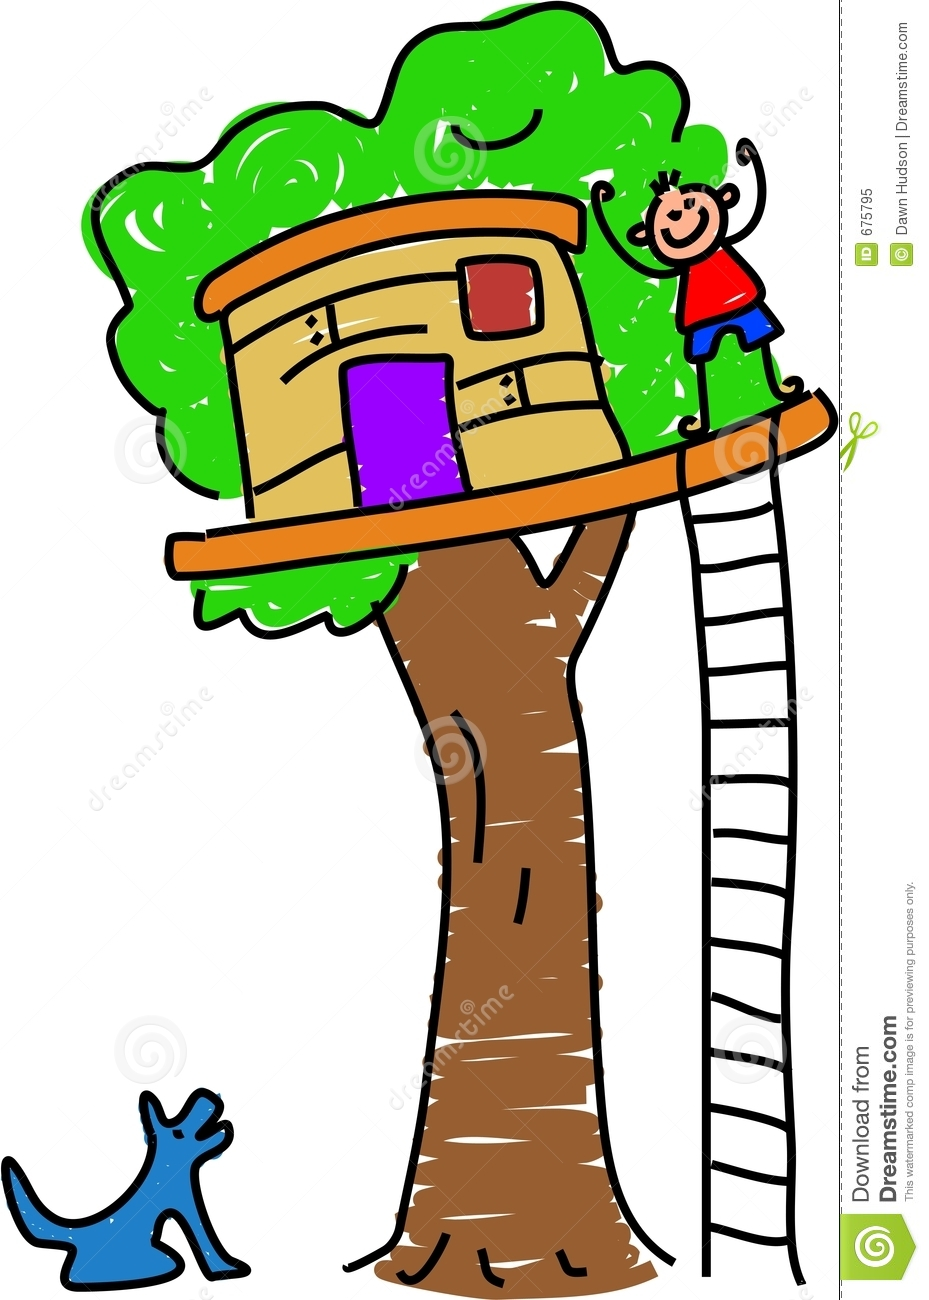 clipart pictures tree house - photo #23